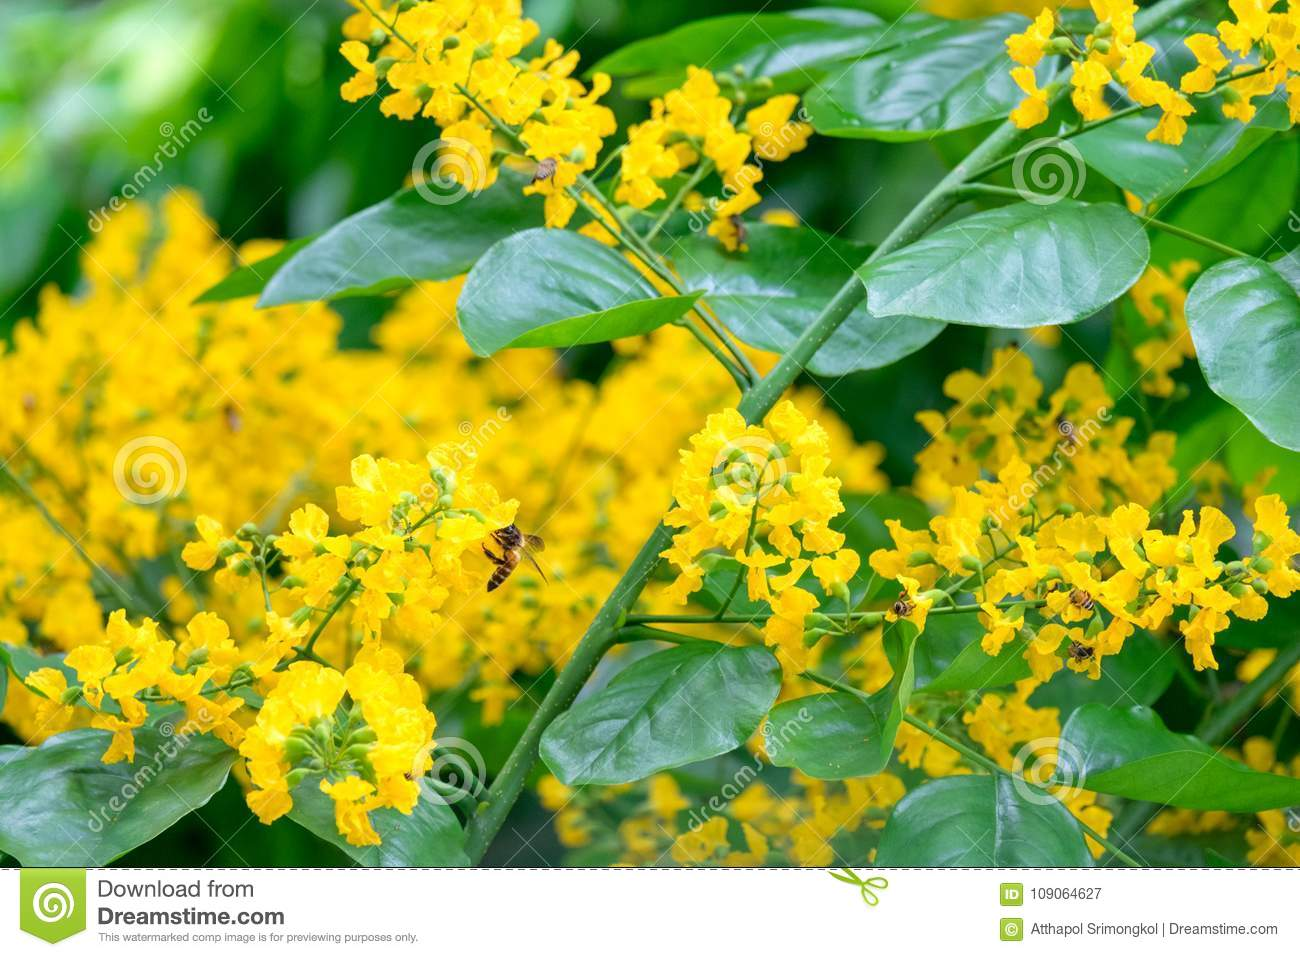 Small yellow flowers of a bouquet of flowers and bees on the tree download small yellow flowers of a bouquet of flowers and bees on the tree stock image mightylinksfo